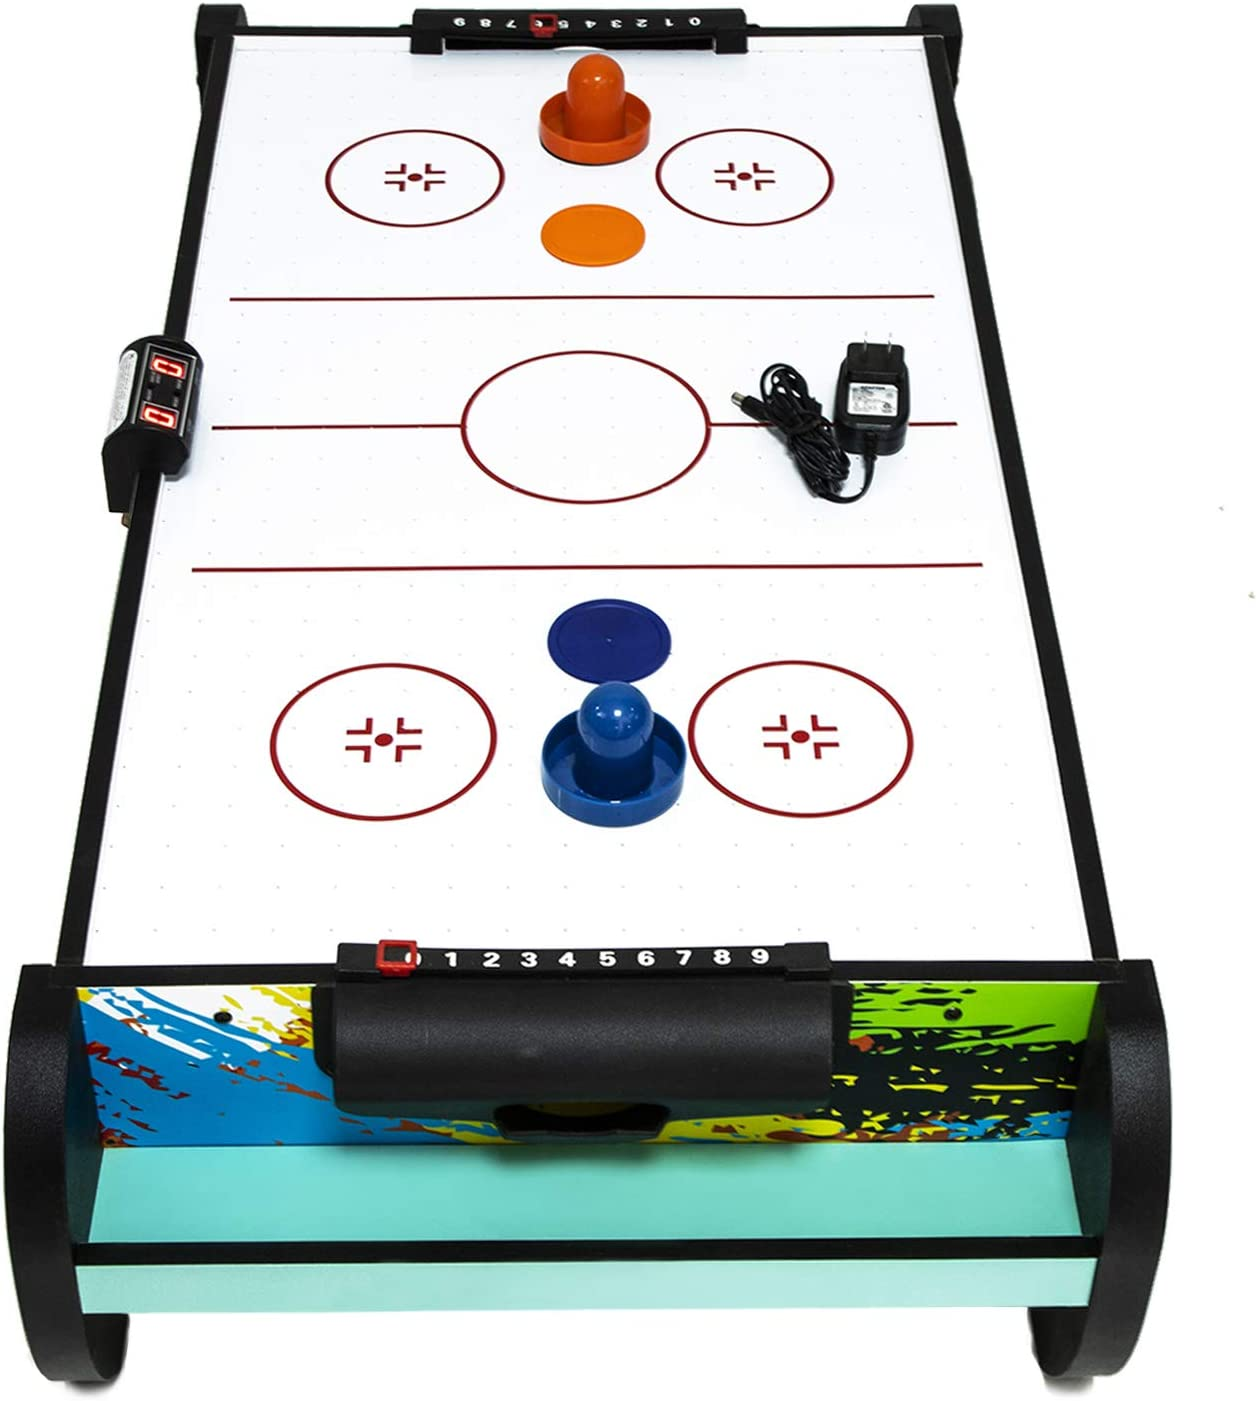 Air Hockey Table Tabletop Air Hockey Games for Kids 2 Pucks Electric Motor Fan for Blazing Speed with LED Score Board for Game Room Teens and Adults Play Fun Table-Top Game with 2 Strikers Office